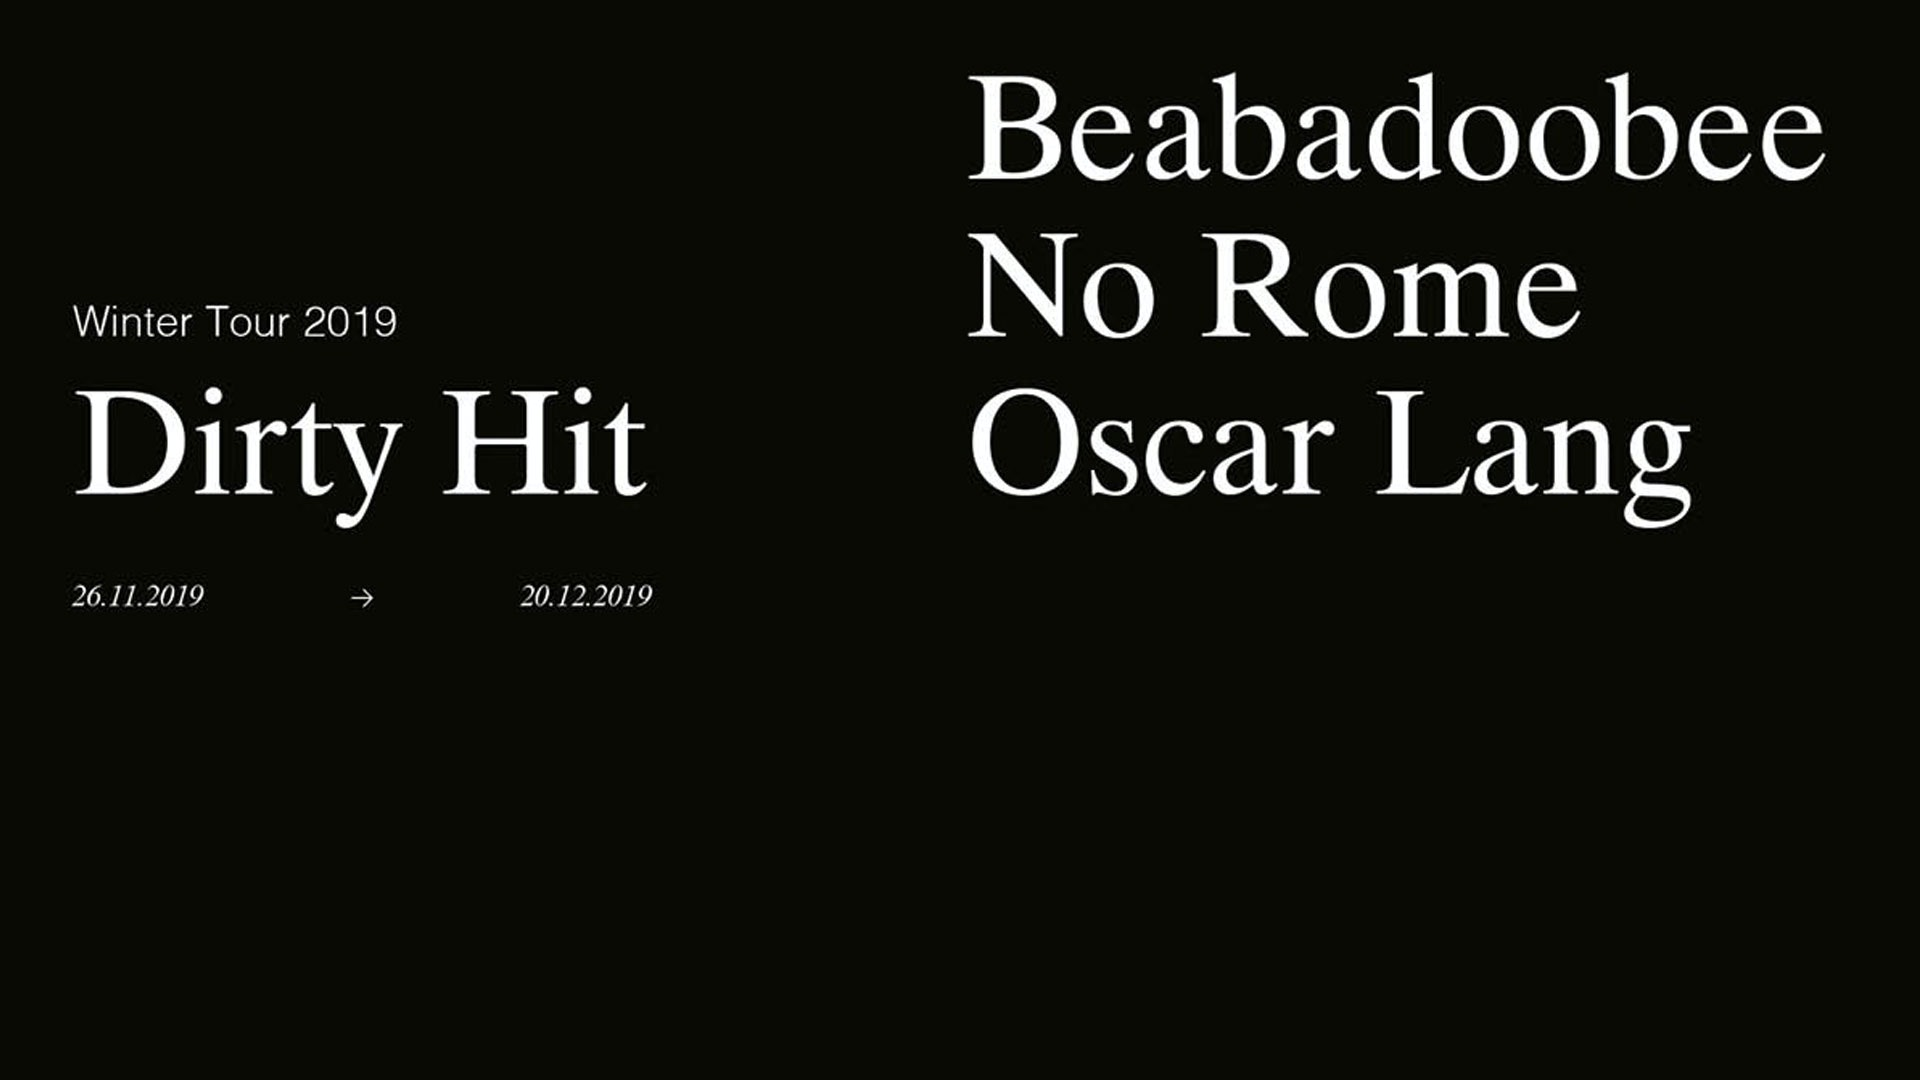 [Venue upgrade] Dirty Hit Tour presents Beabadoobee, No Rome & Oscar Lang